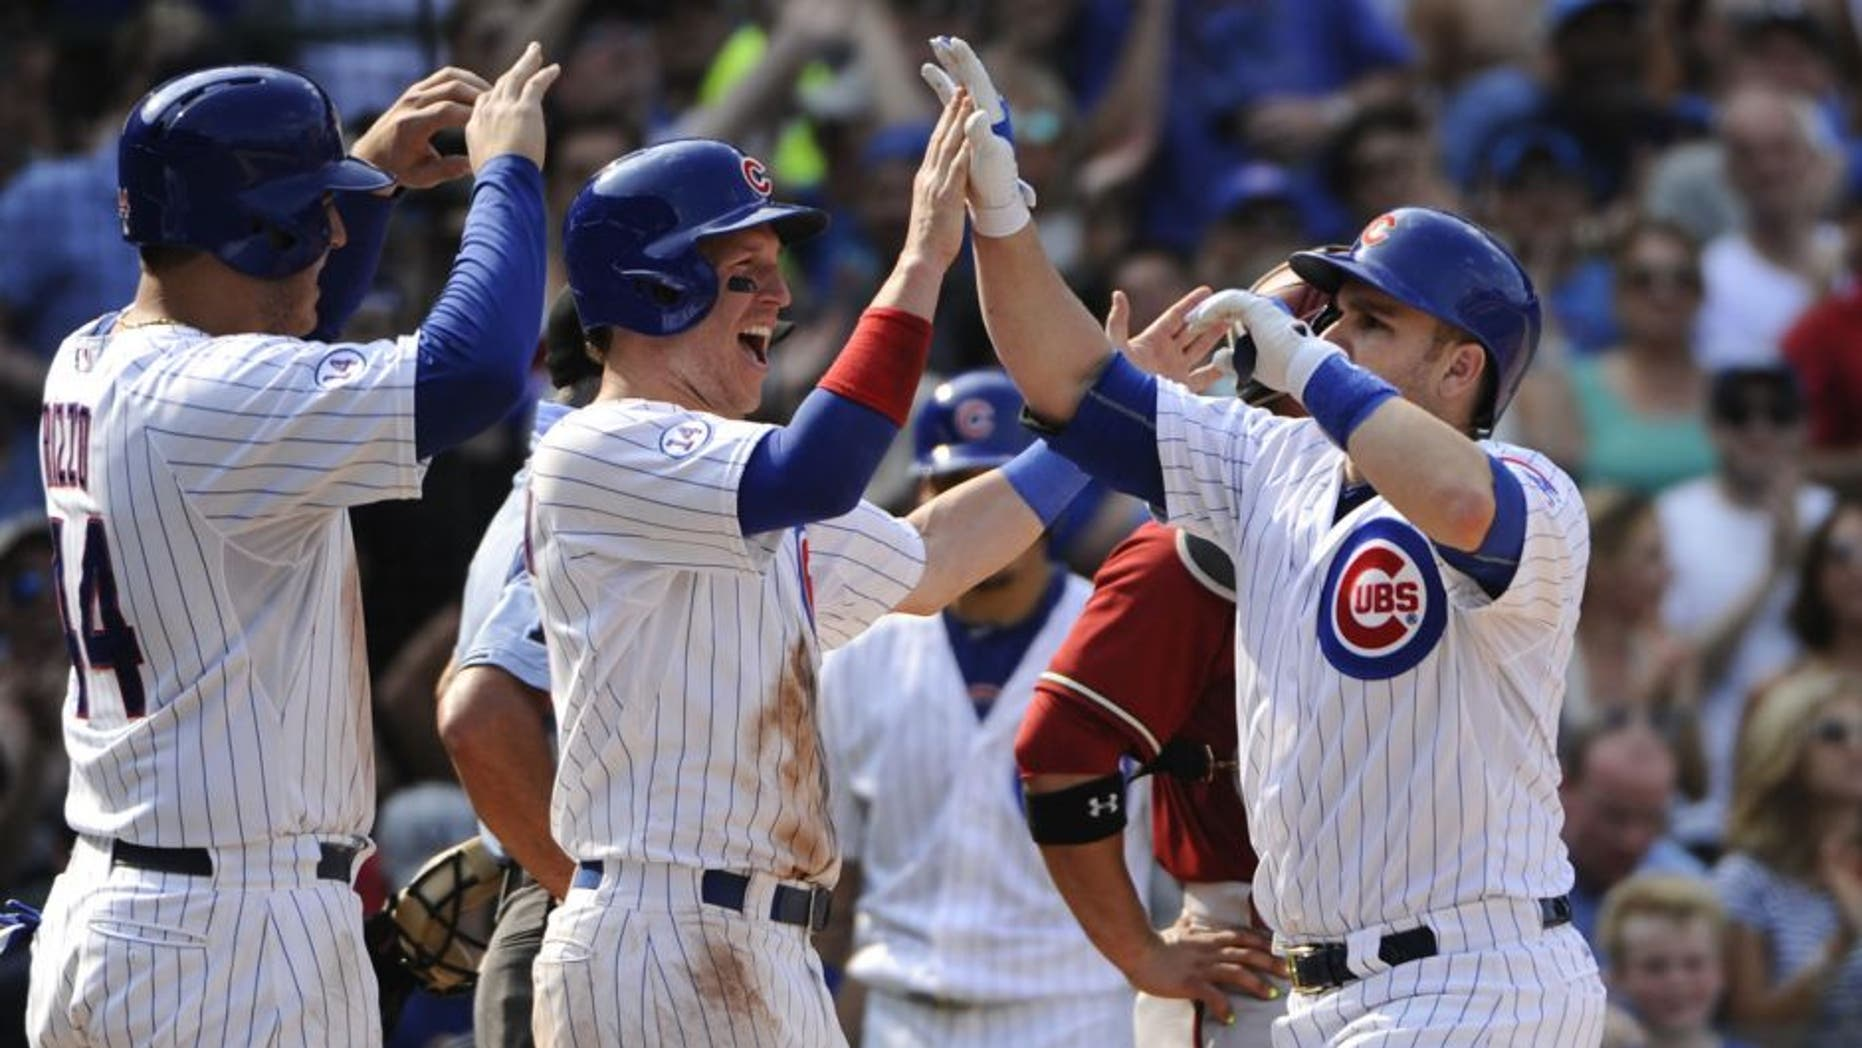 Chicago Cubs' Anthony Rizzo (44), left, and Chris Coghlan, center, high-five teammate Miguel Montero after he hit a grand slam off Arizona Diamondbacks' Matt Reynolds pitching in the sixth inning of a baseball game on Sunday, Sept. 6, 2015, in Chicago. (AP Photo/Matt Marton)